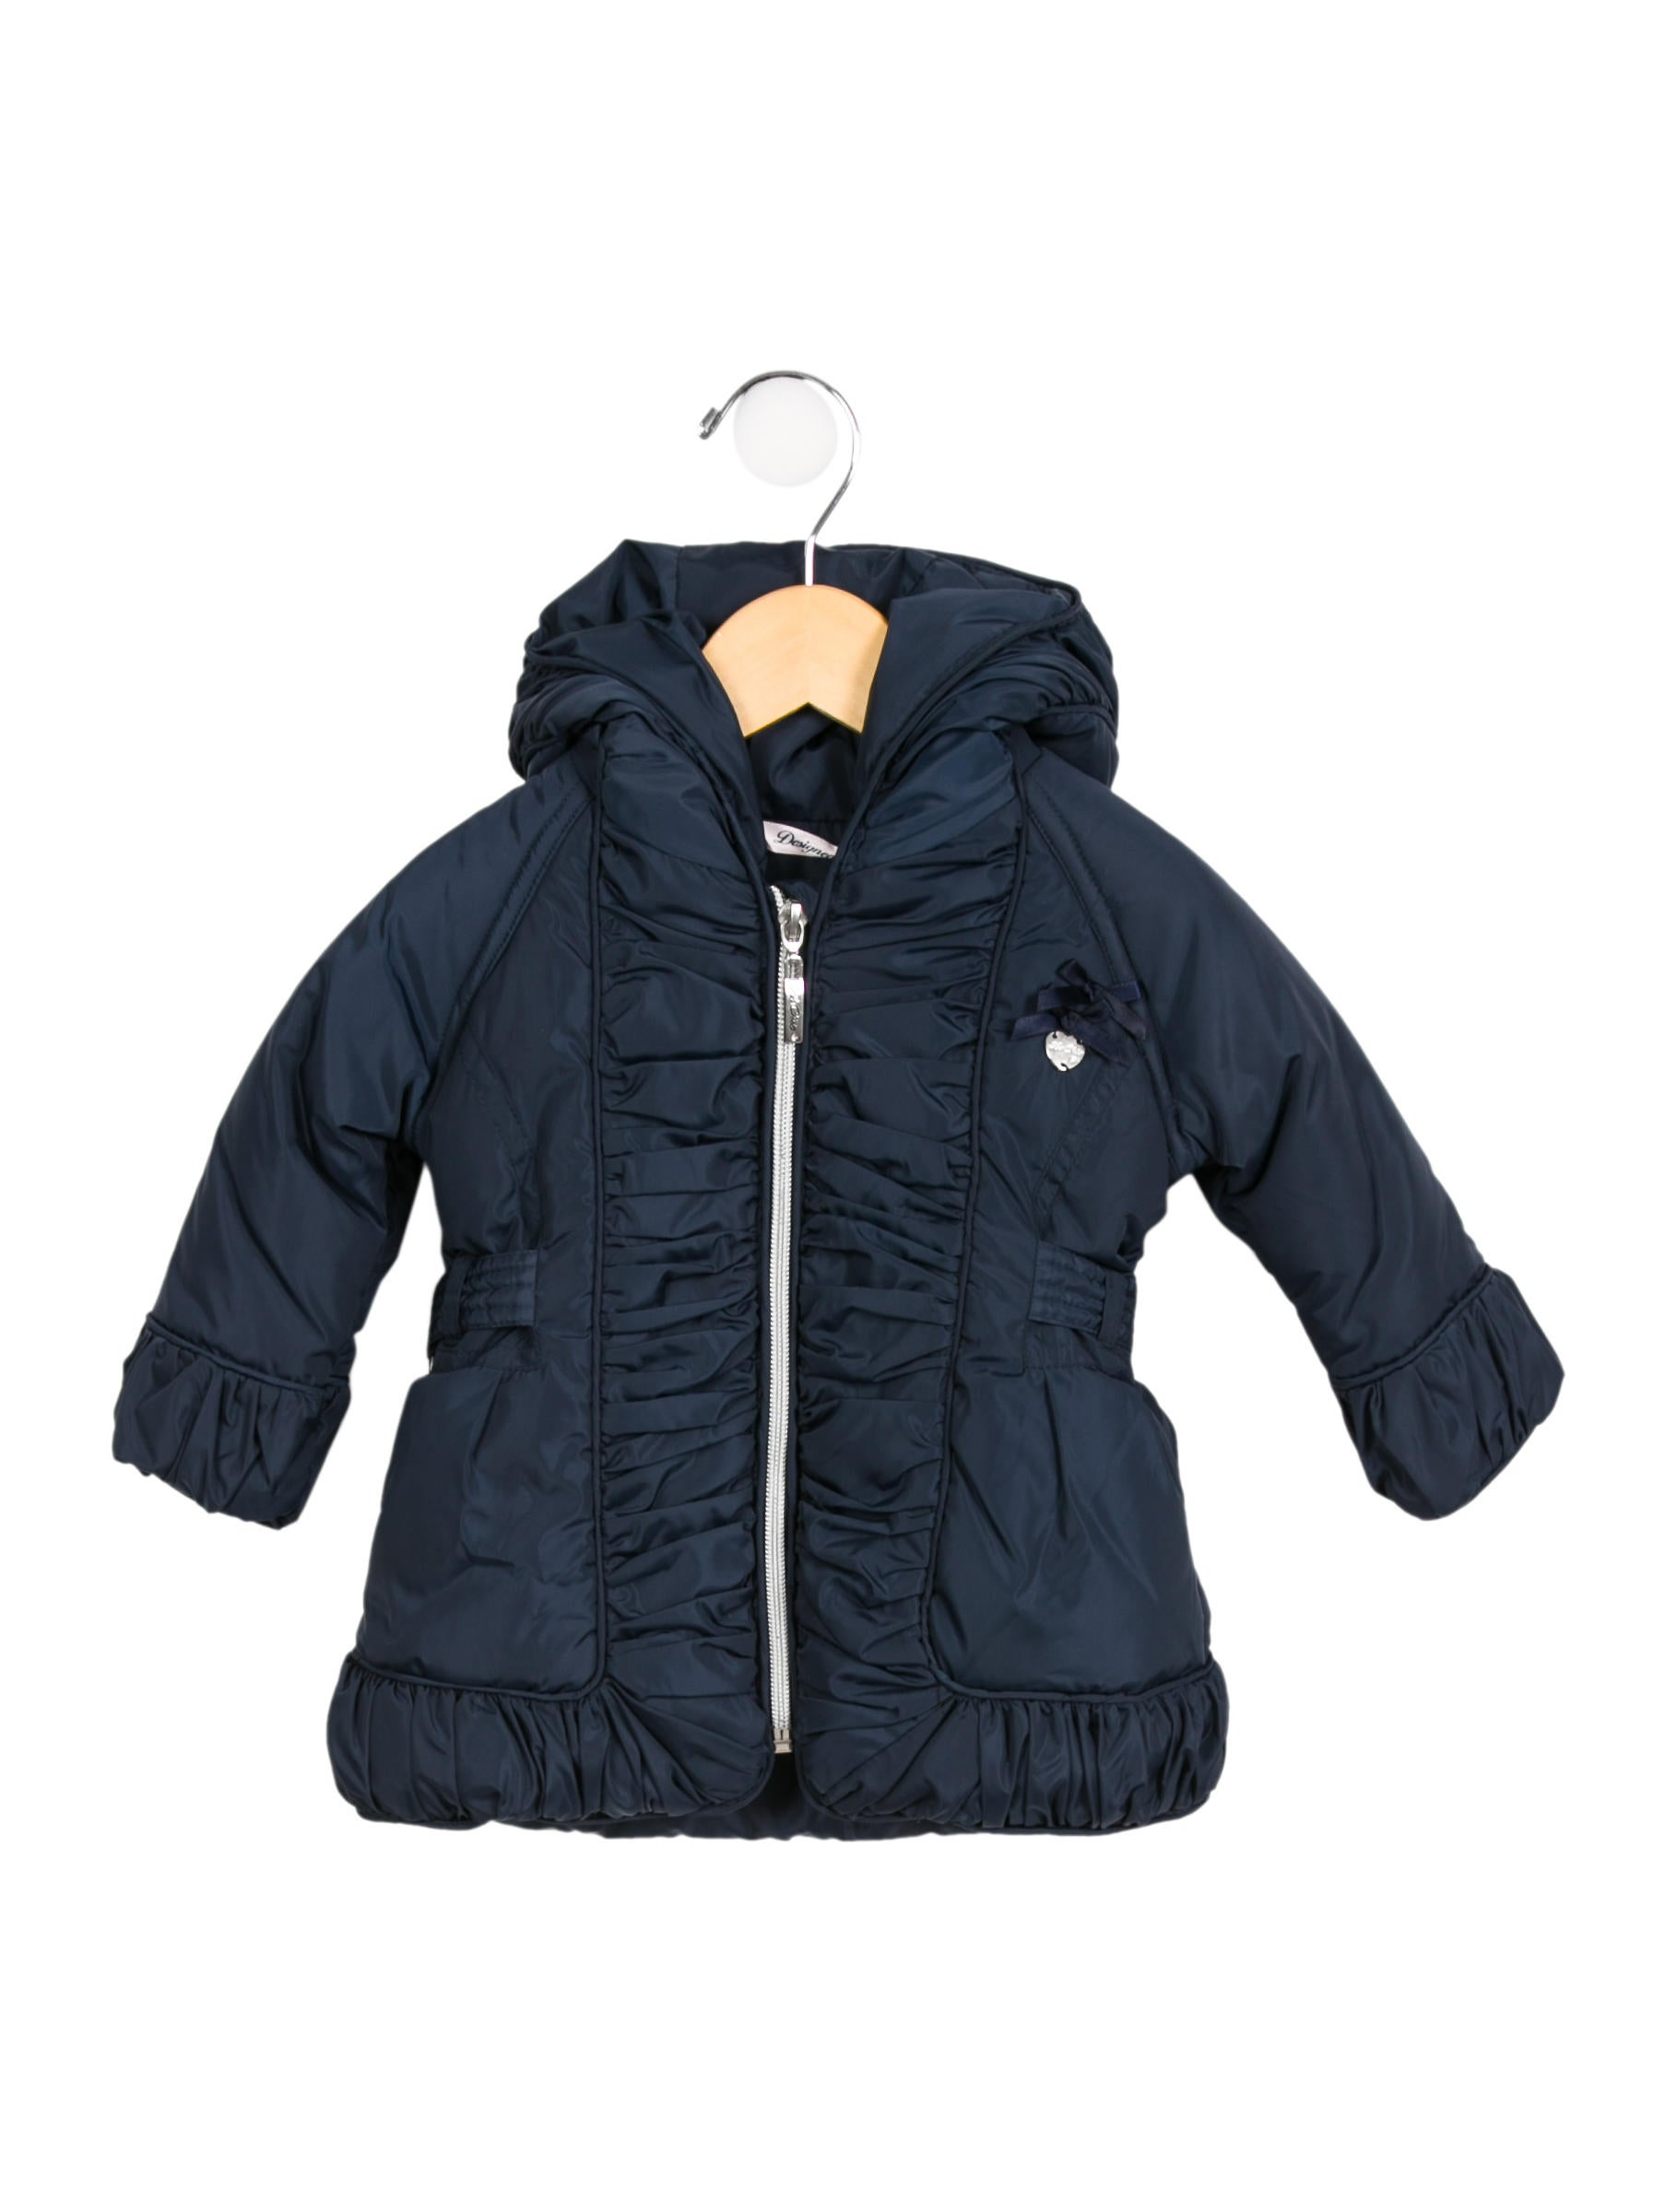 fe7933068471 Le Chic Girls  Ruched Hooded Coat w  Tags - Girls - WLECH20006